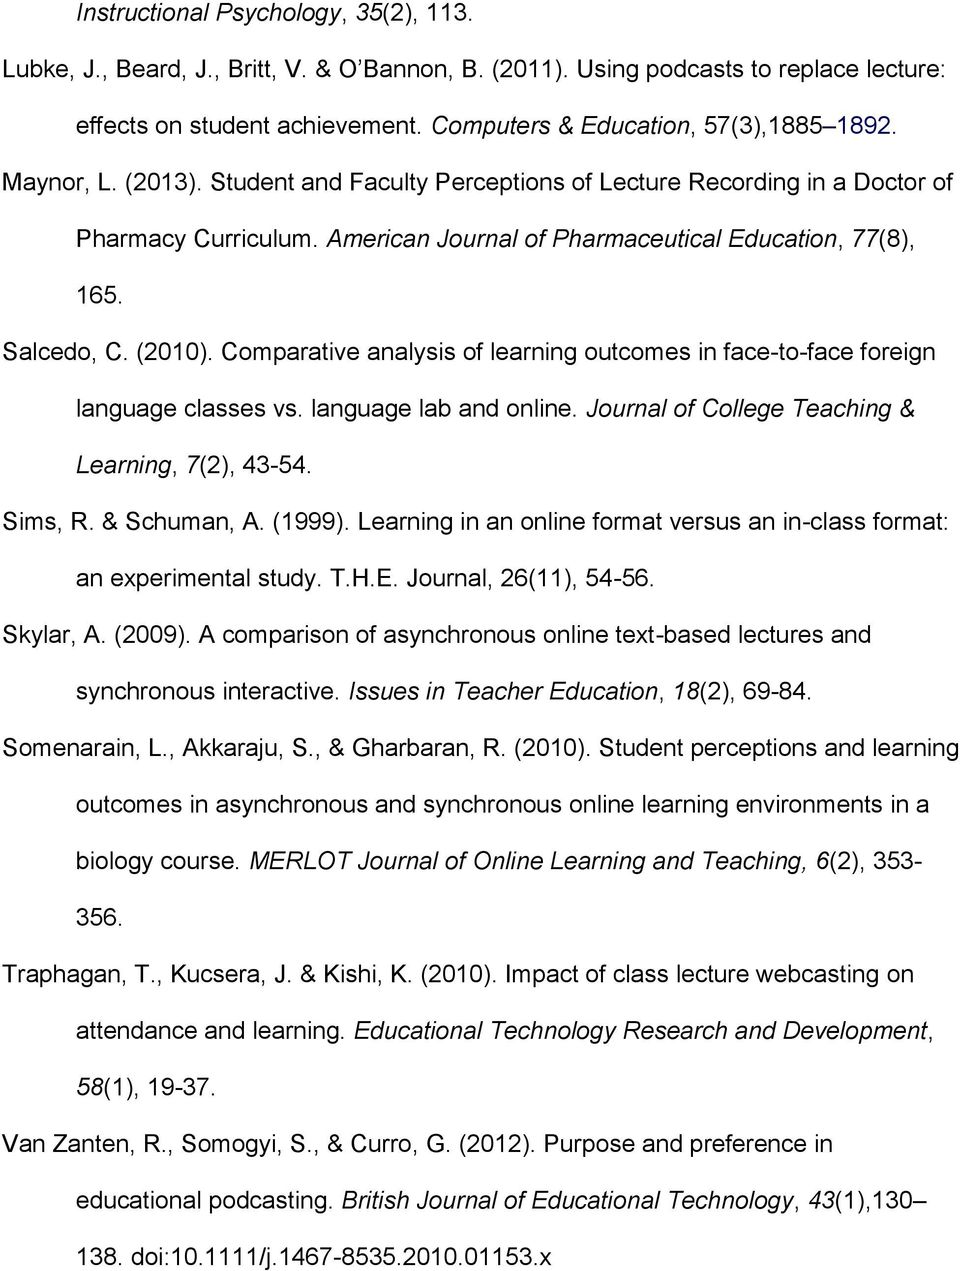 Comparative analysis of learning outcomes in face-to-face foreign language classes vs. language lab and online. Journal of College Teaching & Learning, 7(2), 43-54. Sims, R. & Schuman, A. (1999).